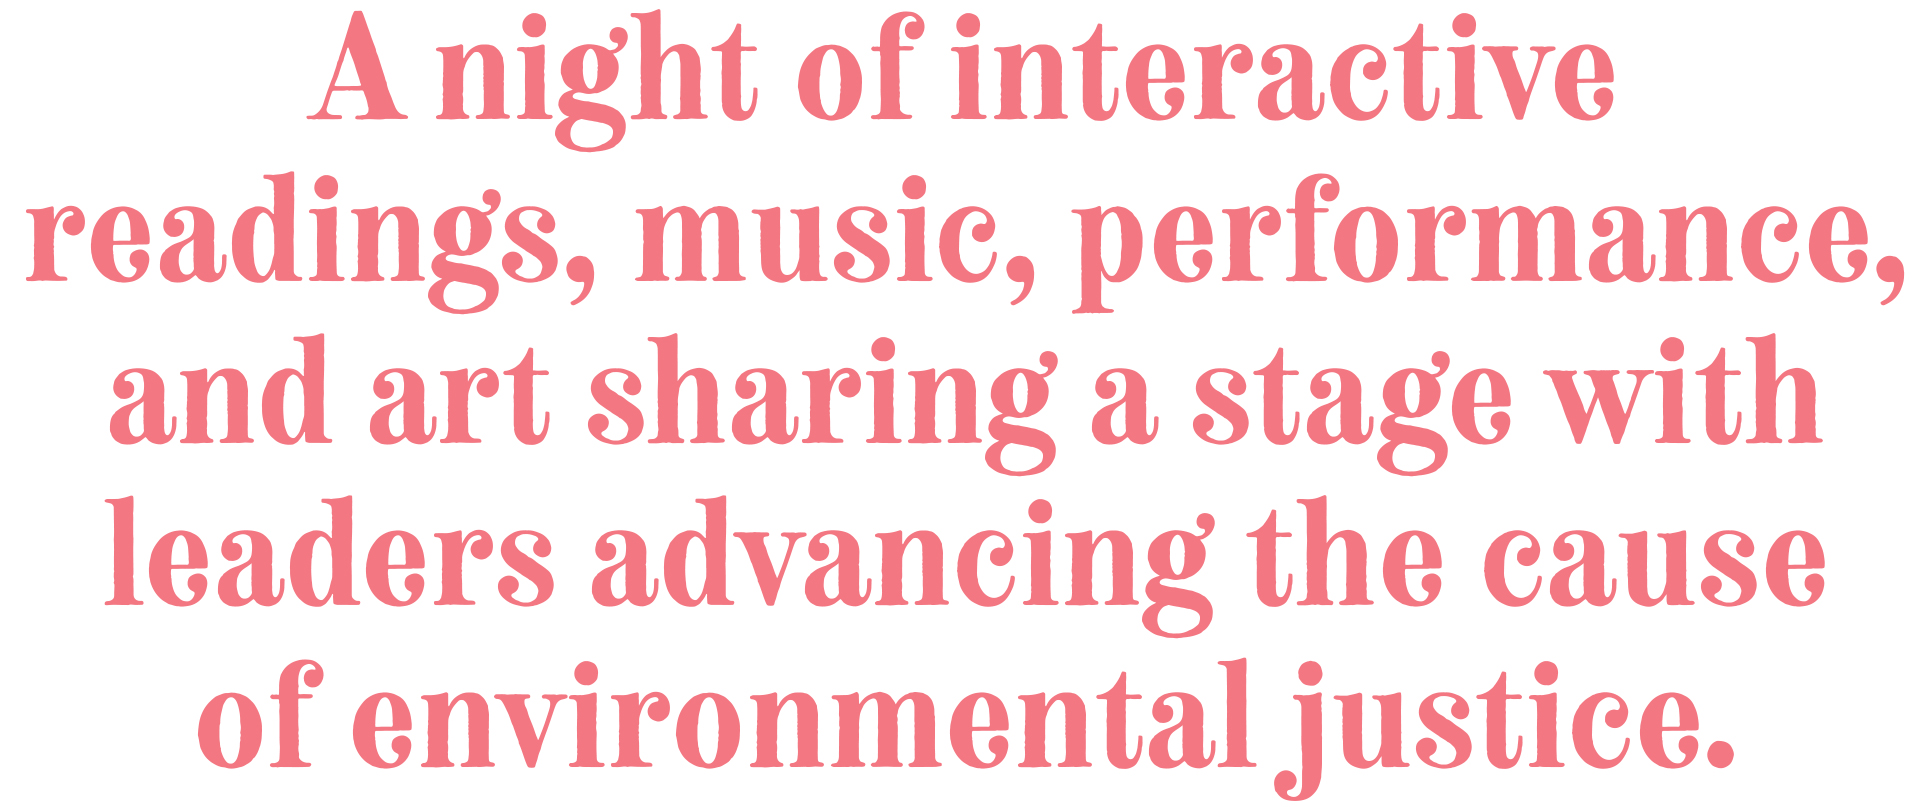 A night of interactive readings, music, performance, and art sharing a stage with leaders advancing the cause of environmental justice.